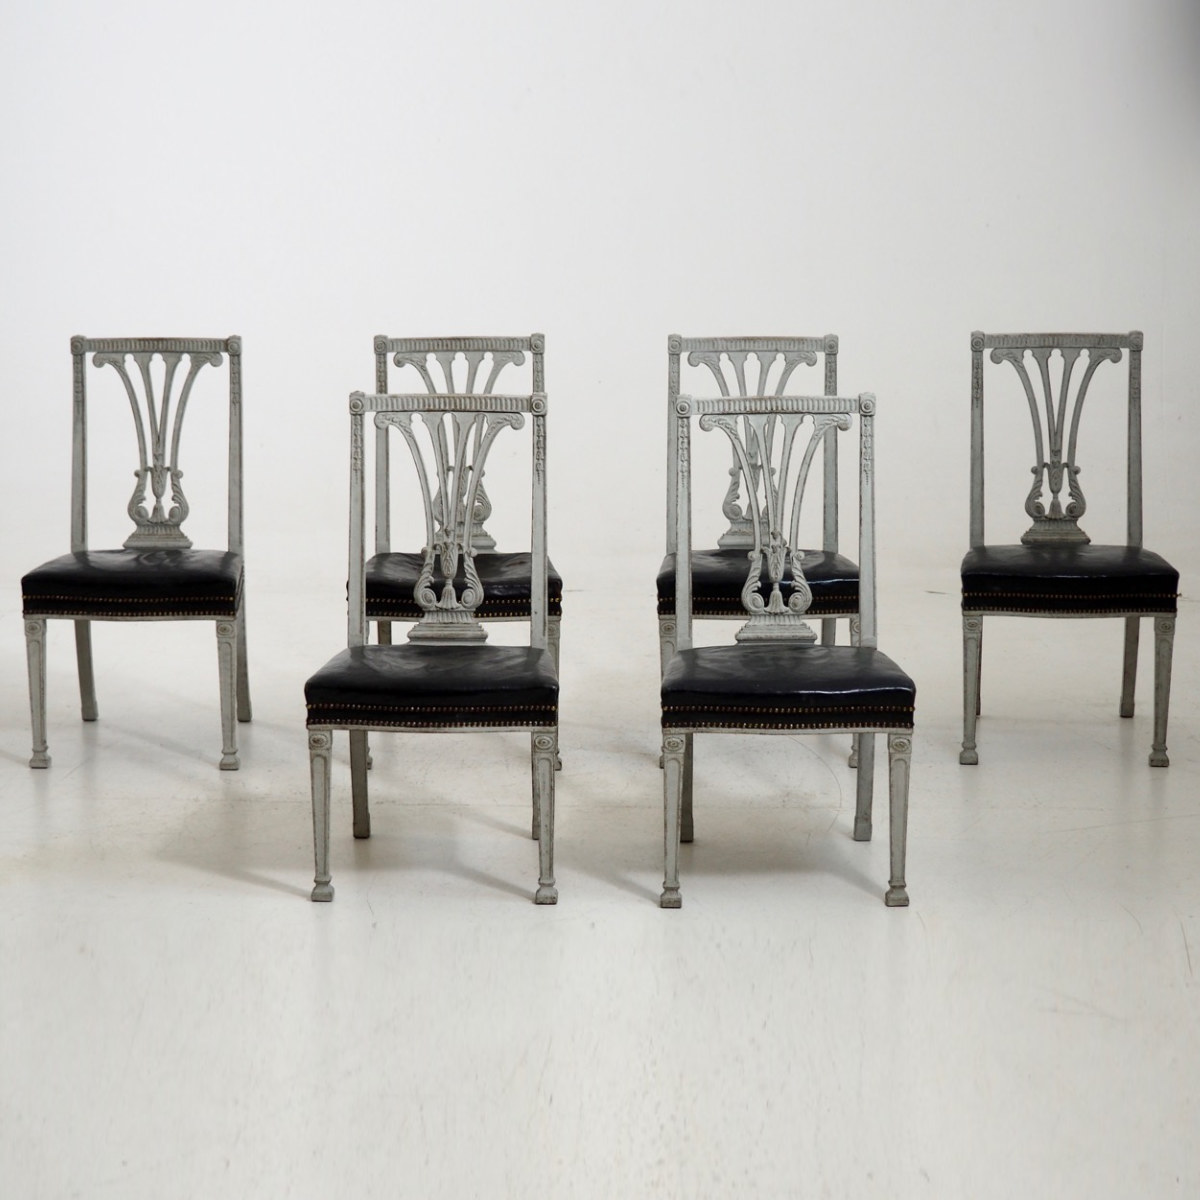 Six large dining chairs, 19th C. - € 2.400